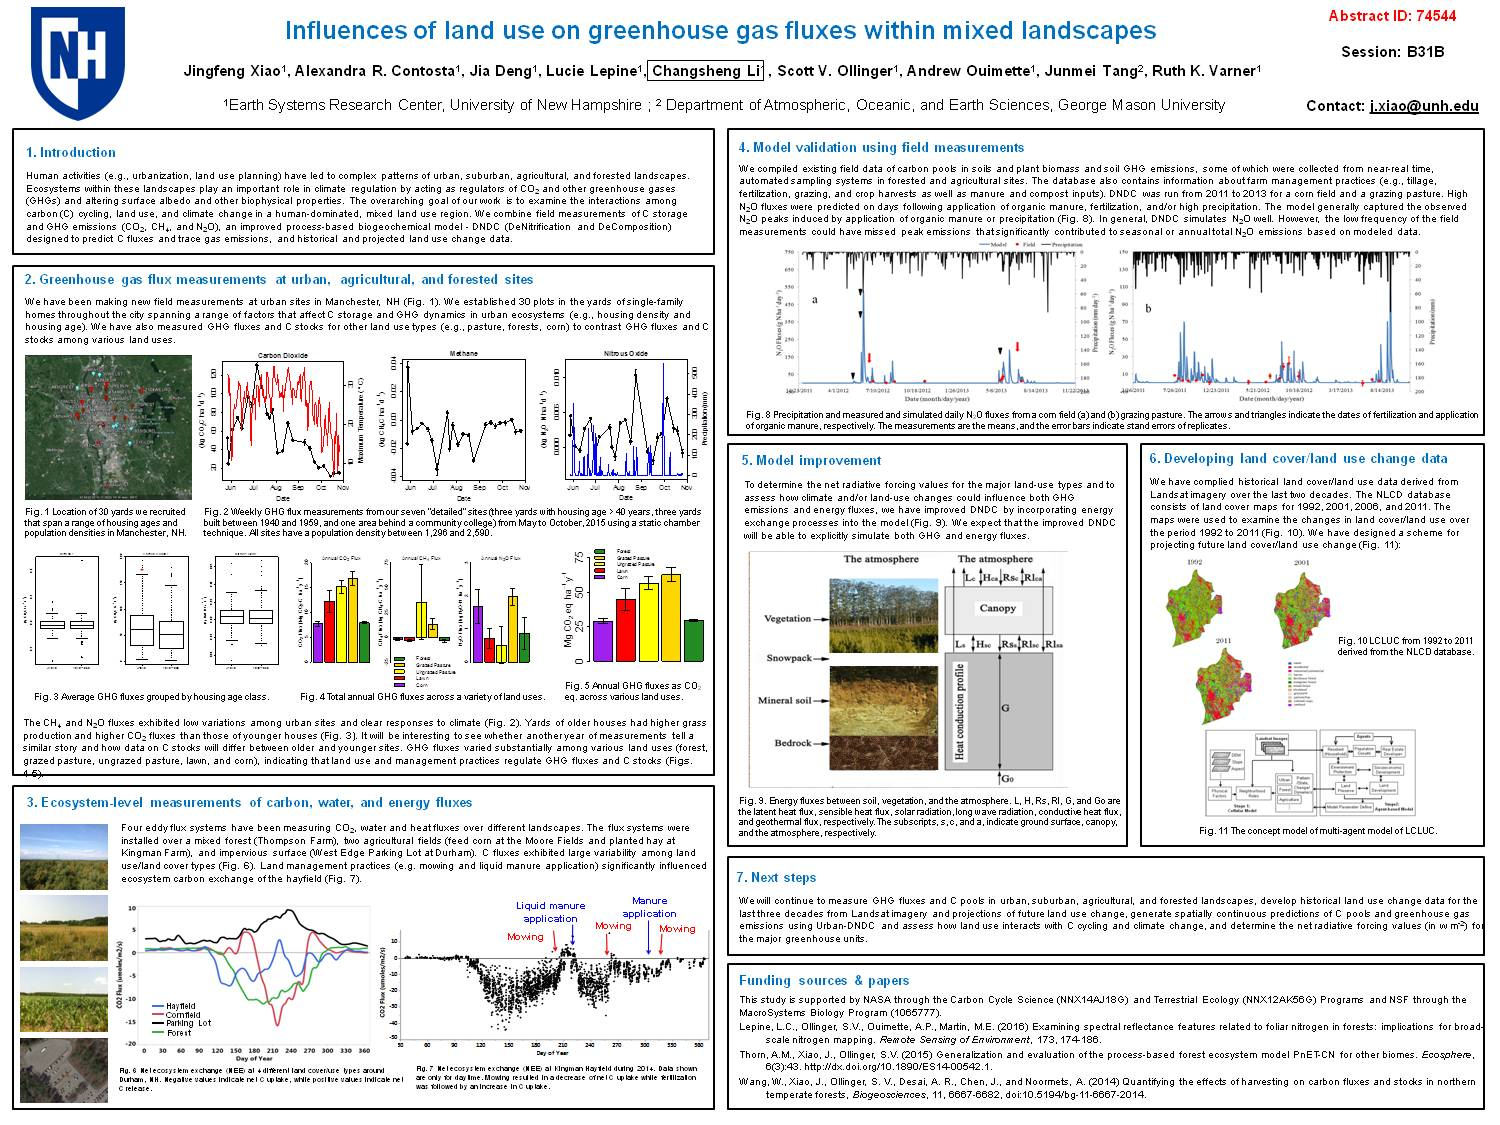 Influences Of Land Use On Greenhouse Gas Fluxes Within Mixed Landscapes by jfxiao